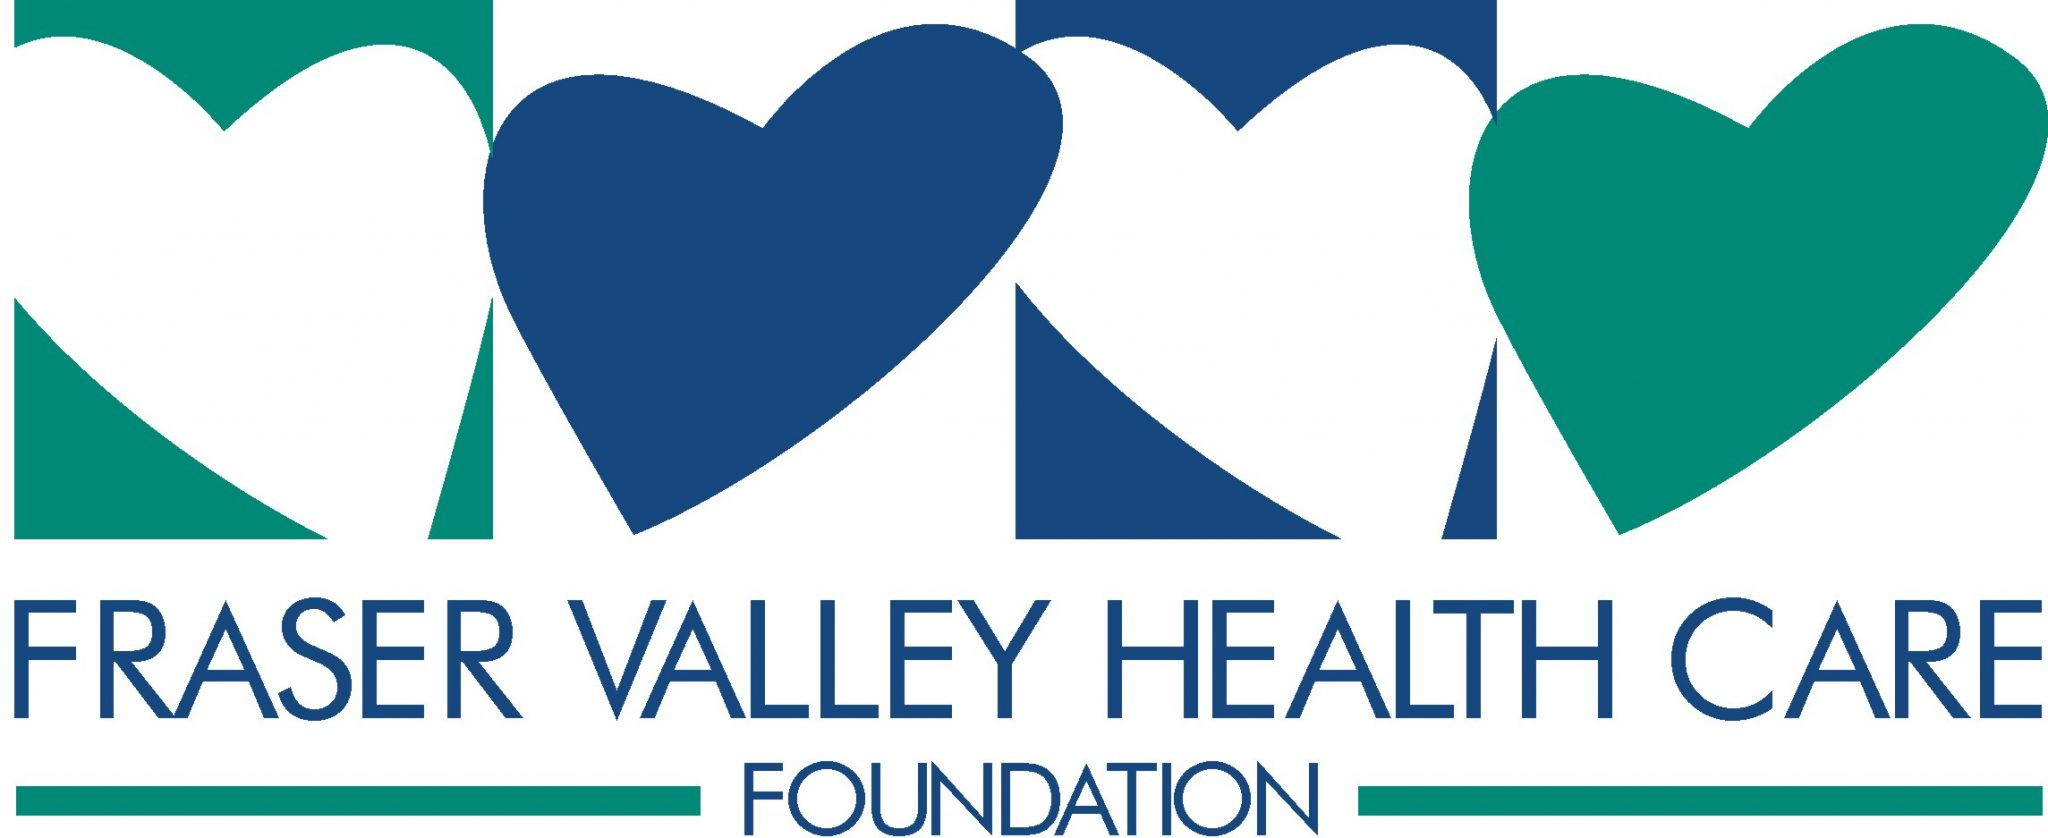 Fraser Valley Health Care Foundation continues to strengthen board of directors